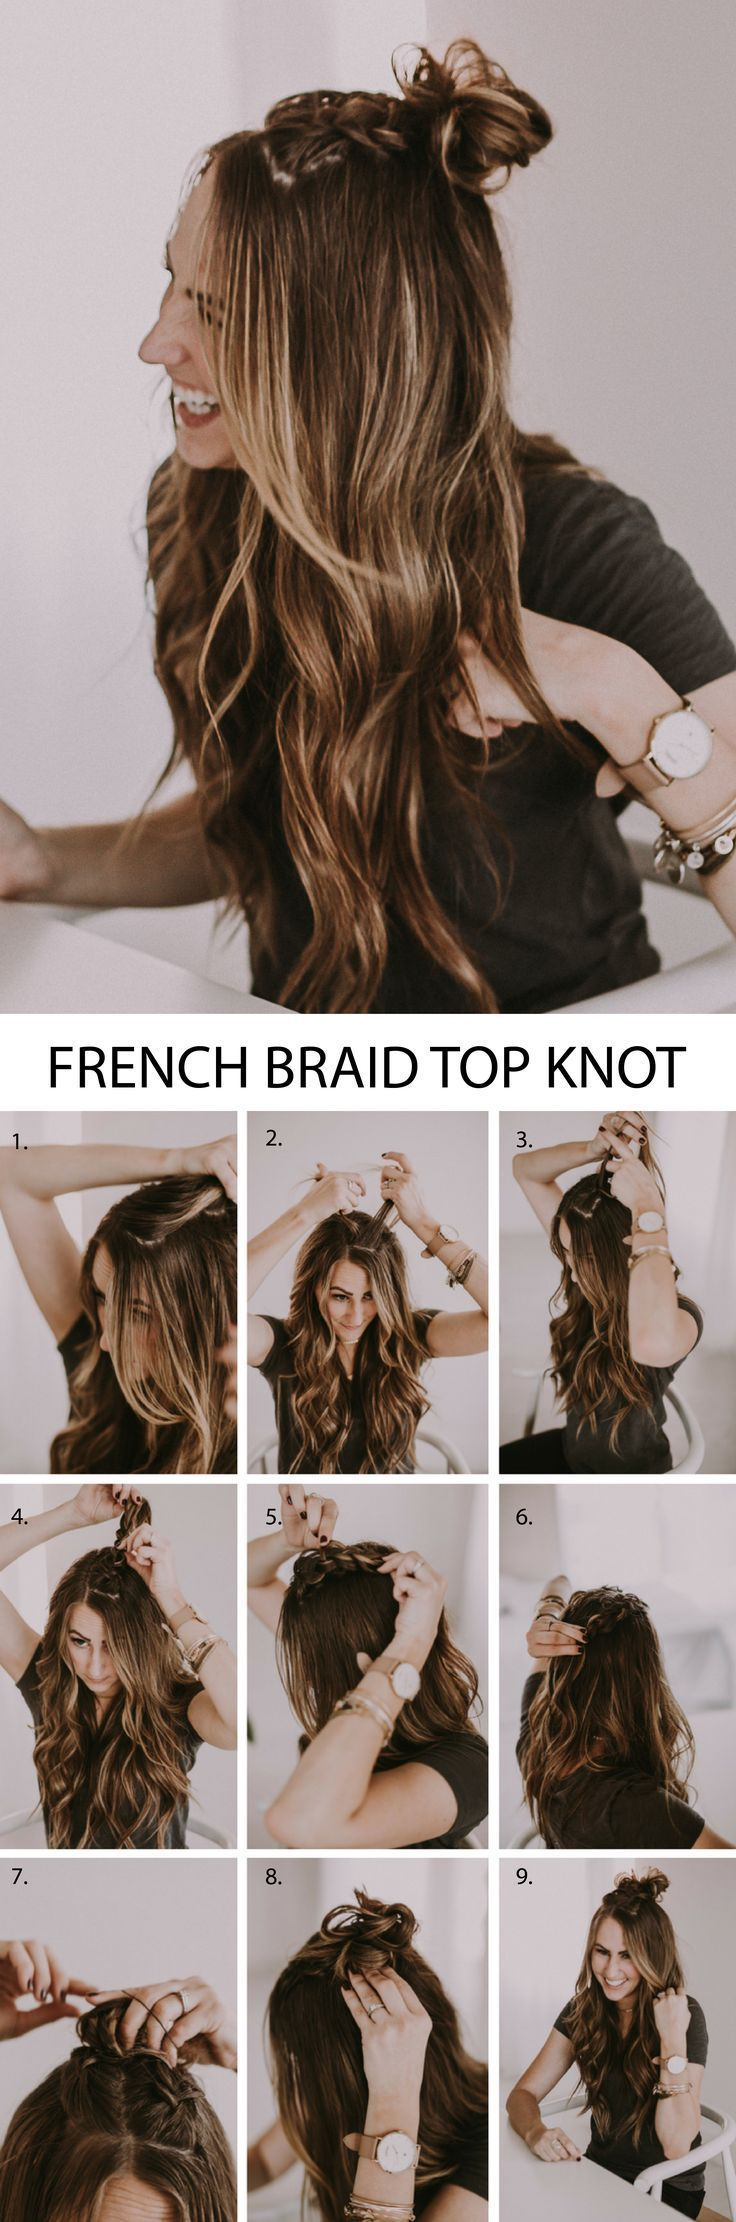 Double French Braid Half Up Top Knot. Such a beautiful hairstyle with braids and...